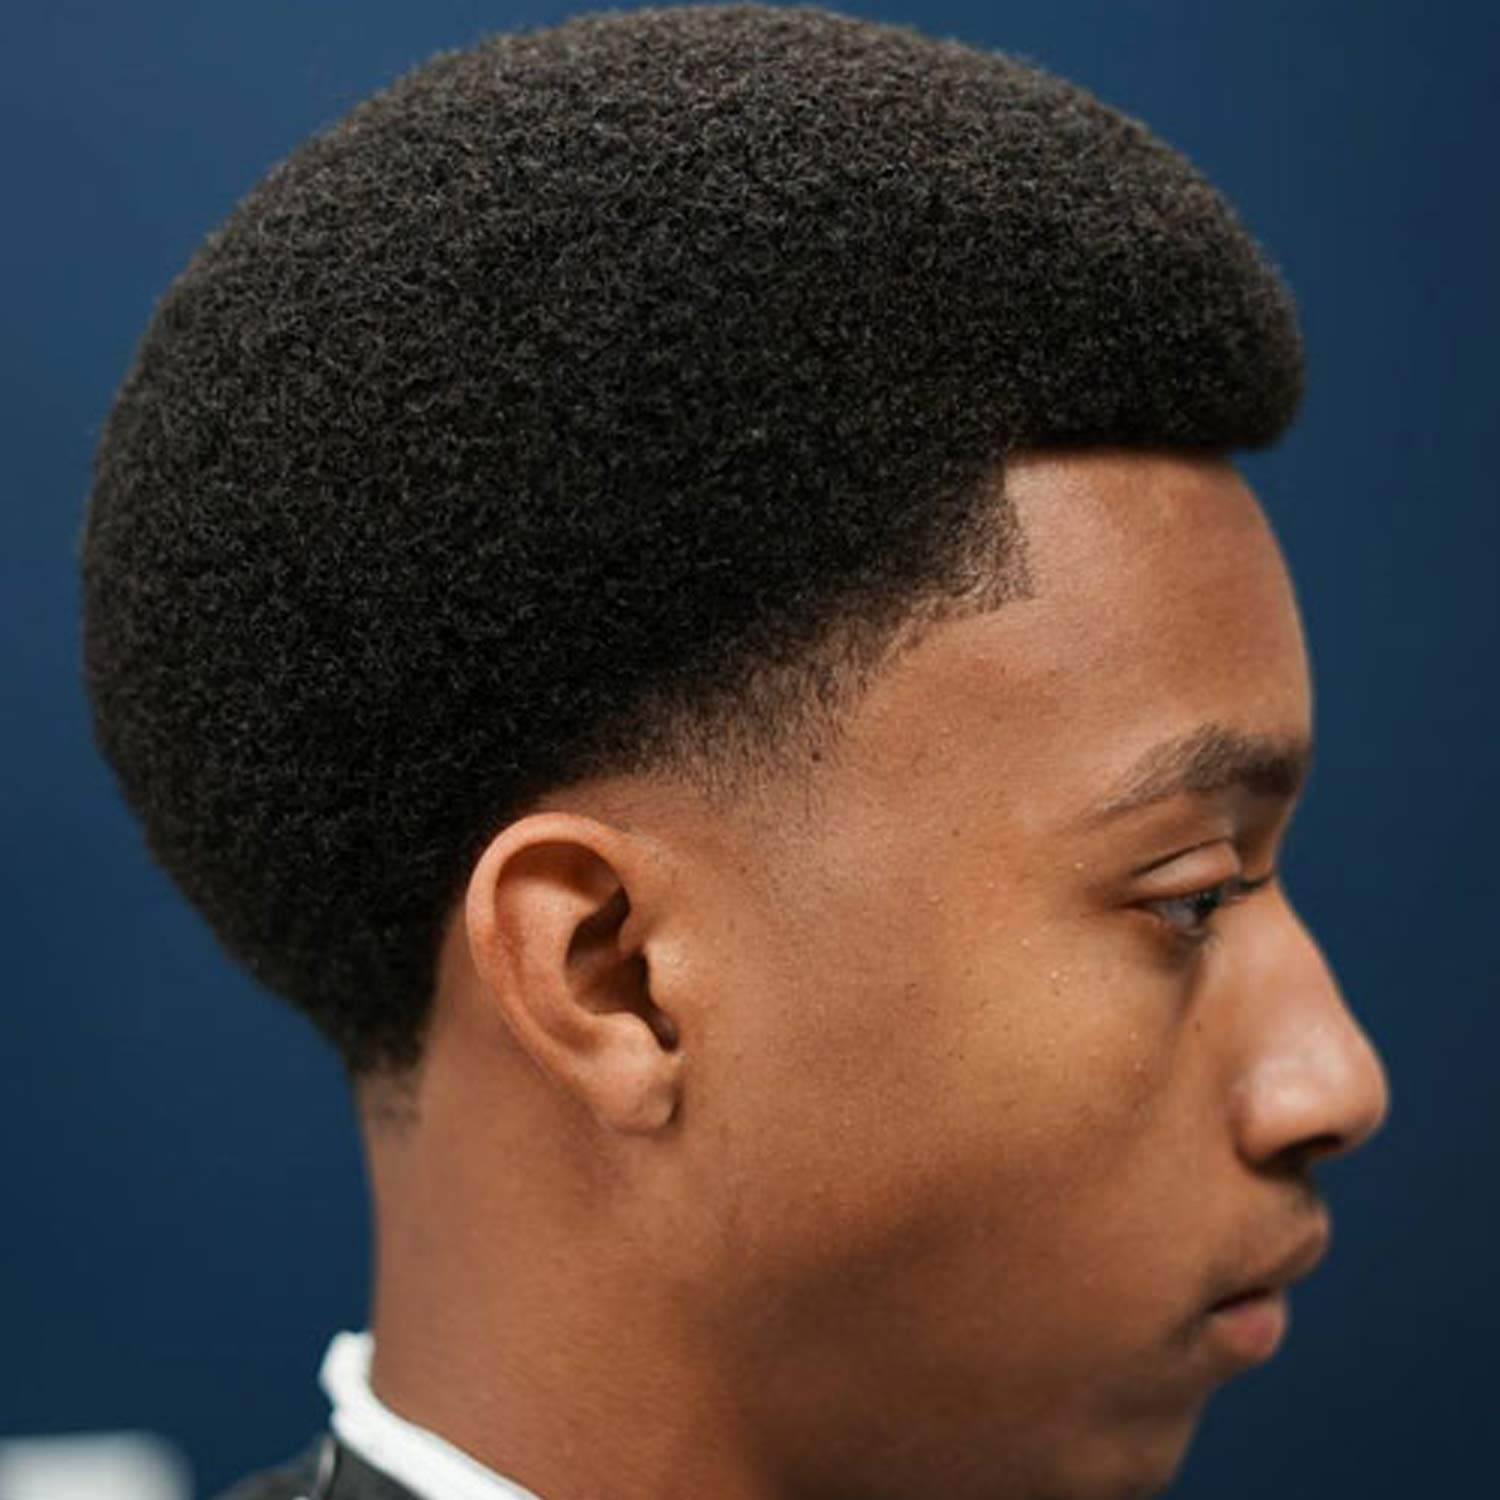 Afro men with 50 Short